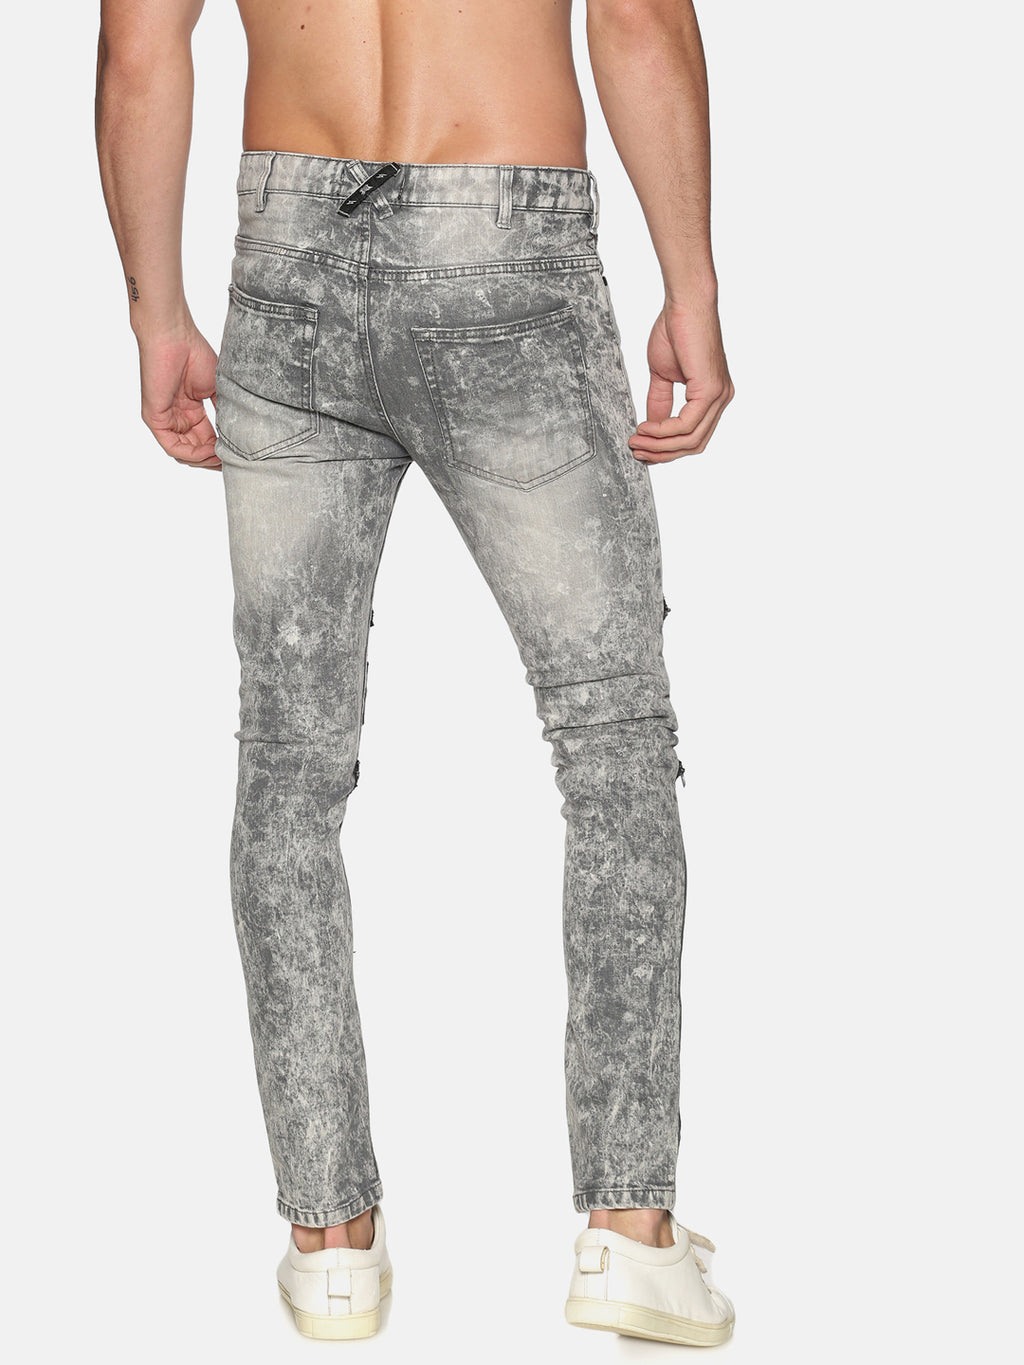 Kultprit Men's Skinny Jeans Knee Zipper With Placement Print Spray Wash